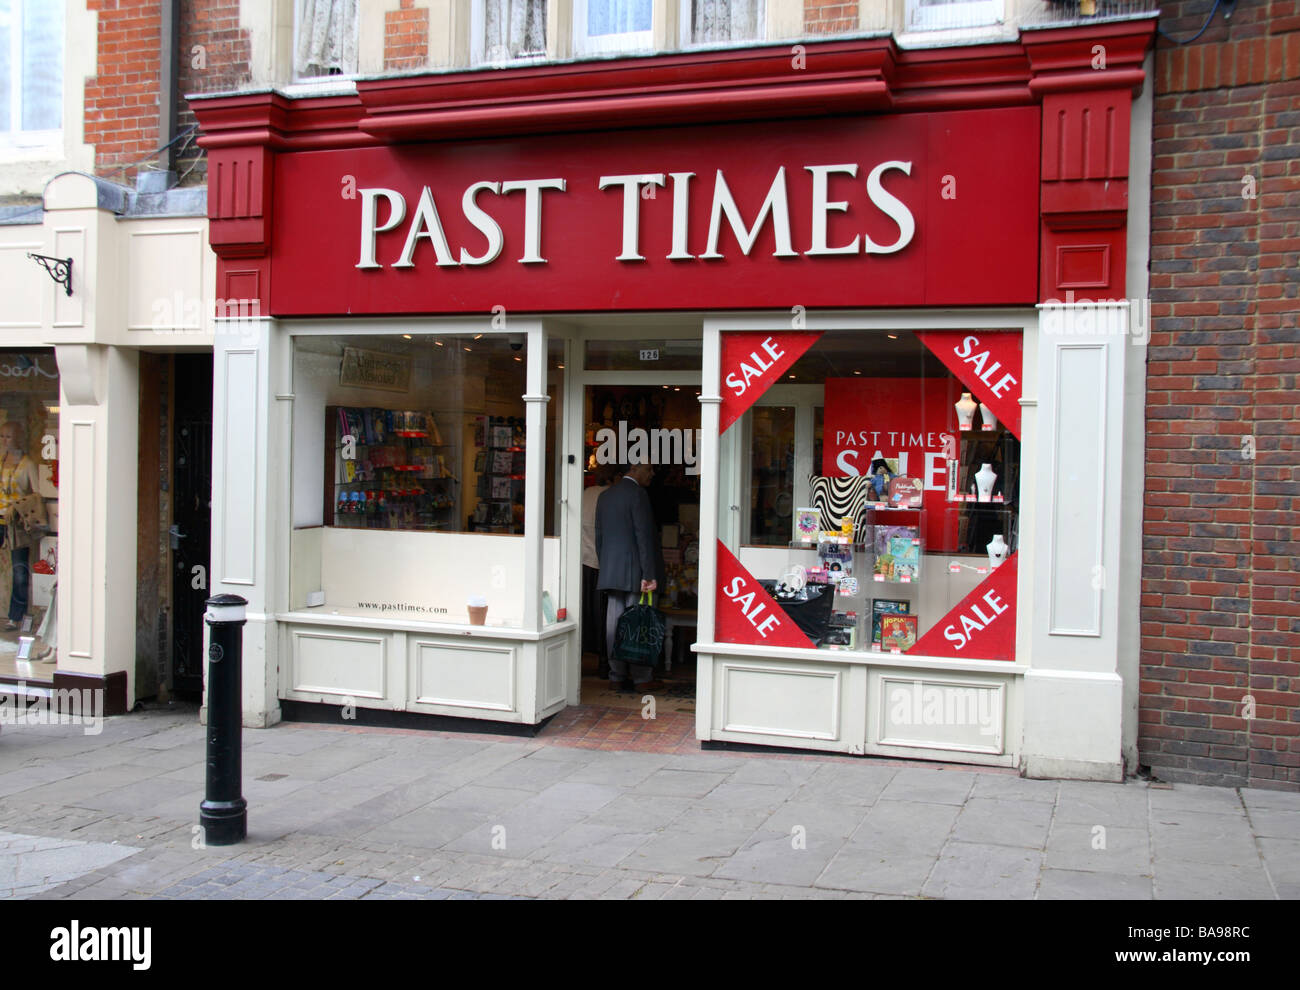 The shop front of the Past Times gift shop, Windsor, Berkshire, UK. - Stock Image